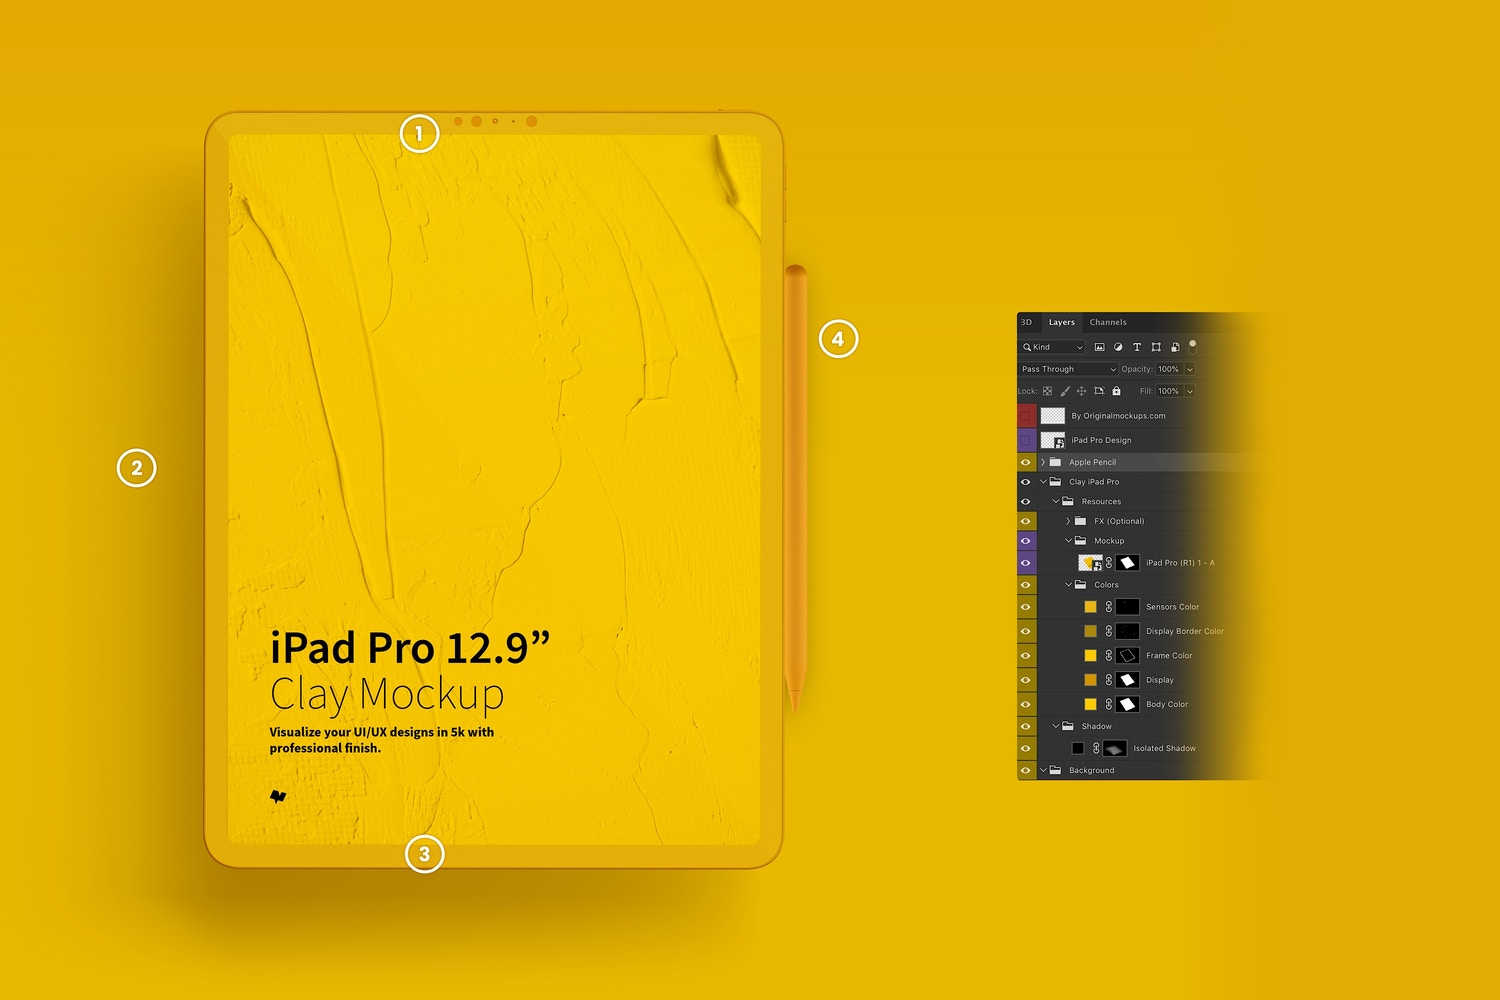 "Clay iPad Pro 12.9"" Mockup, Portrait Front View (7) by Original Mockups on Original Mockups"